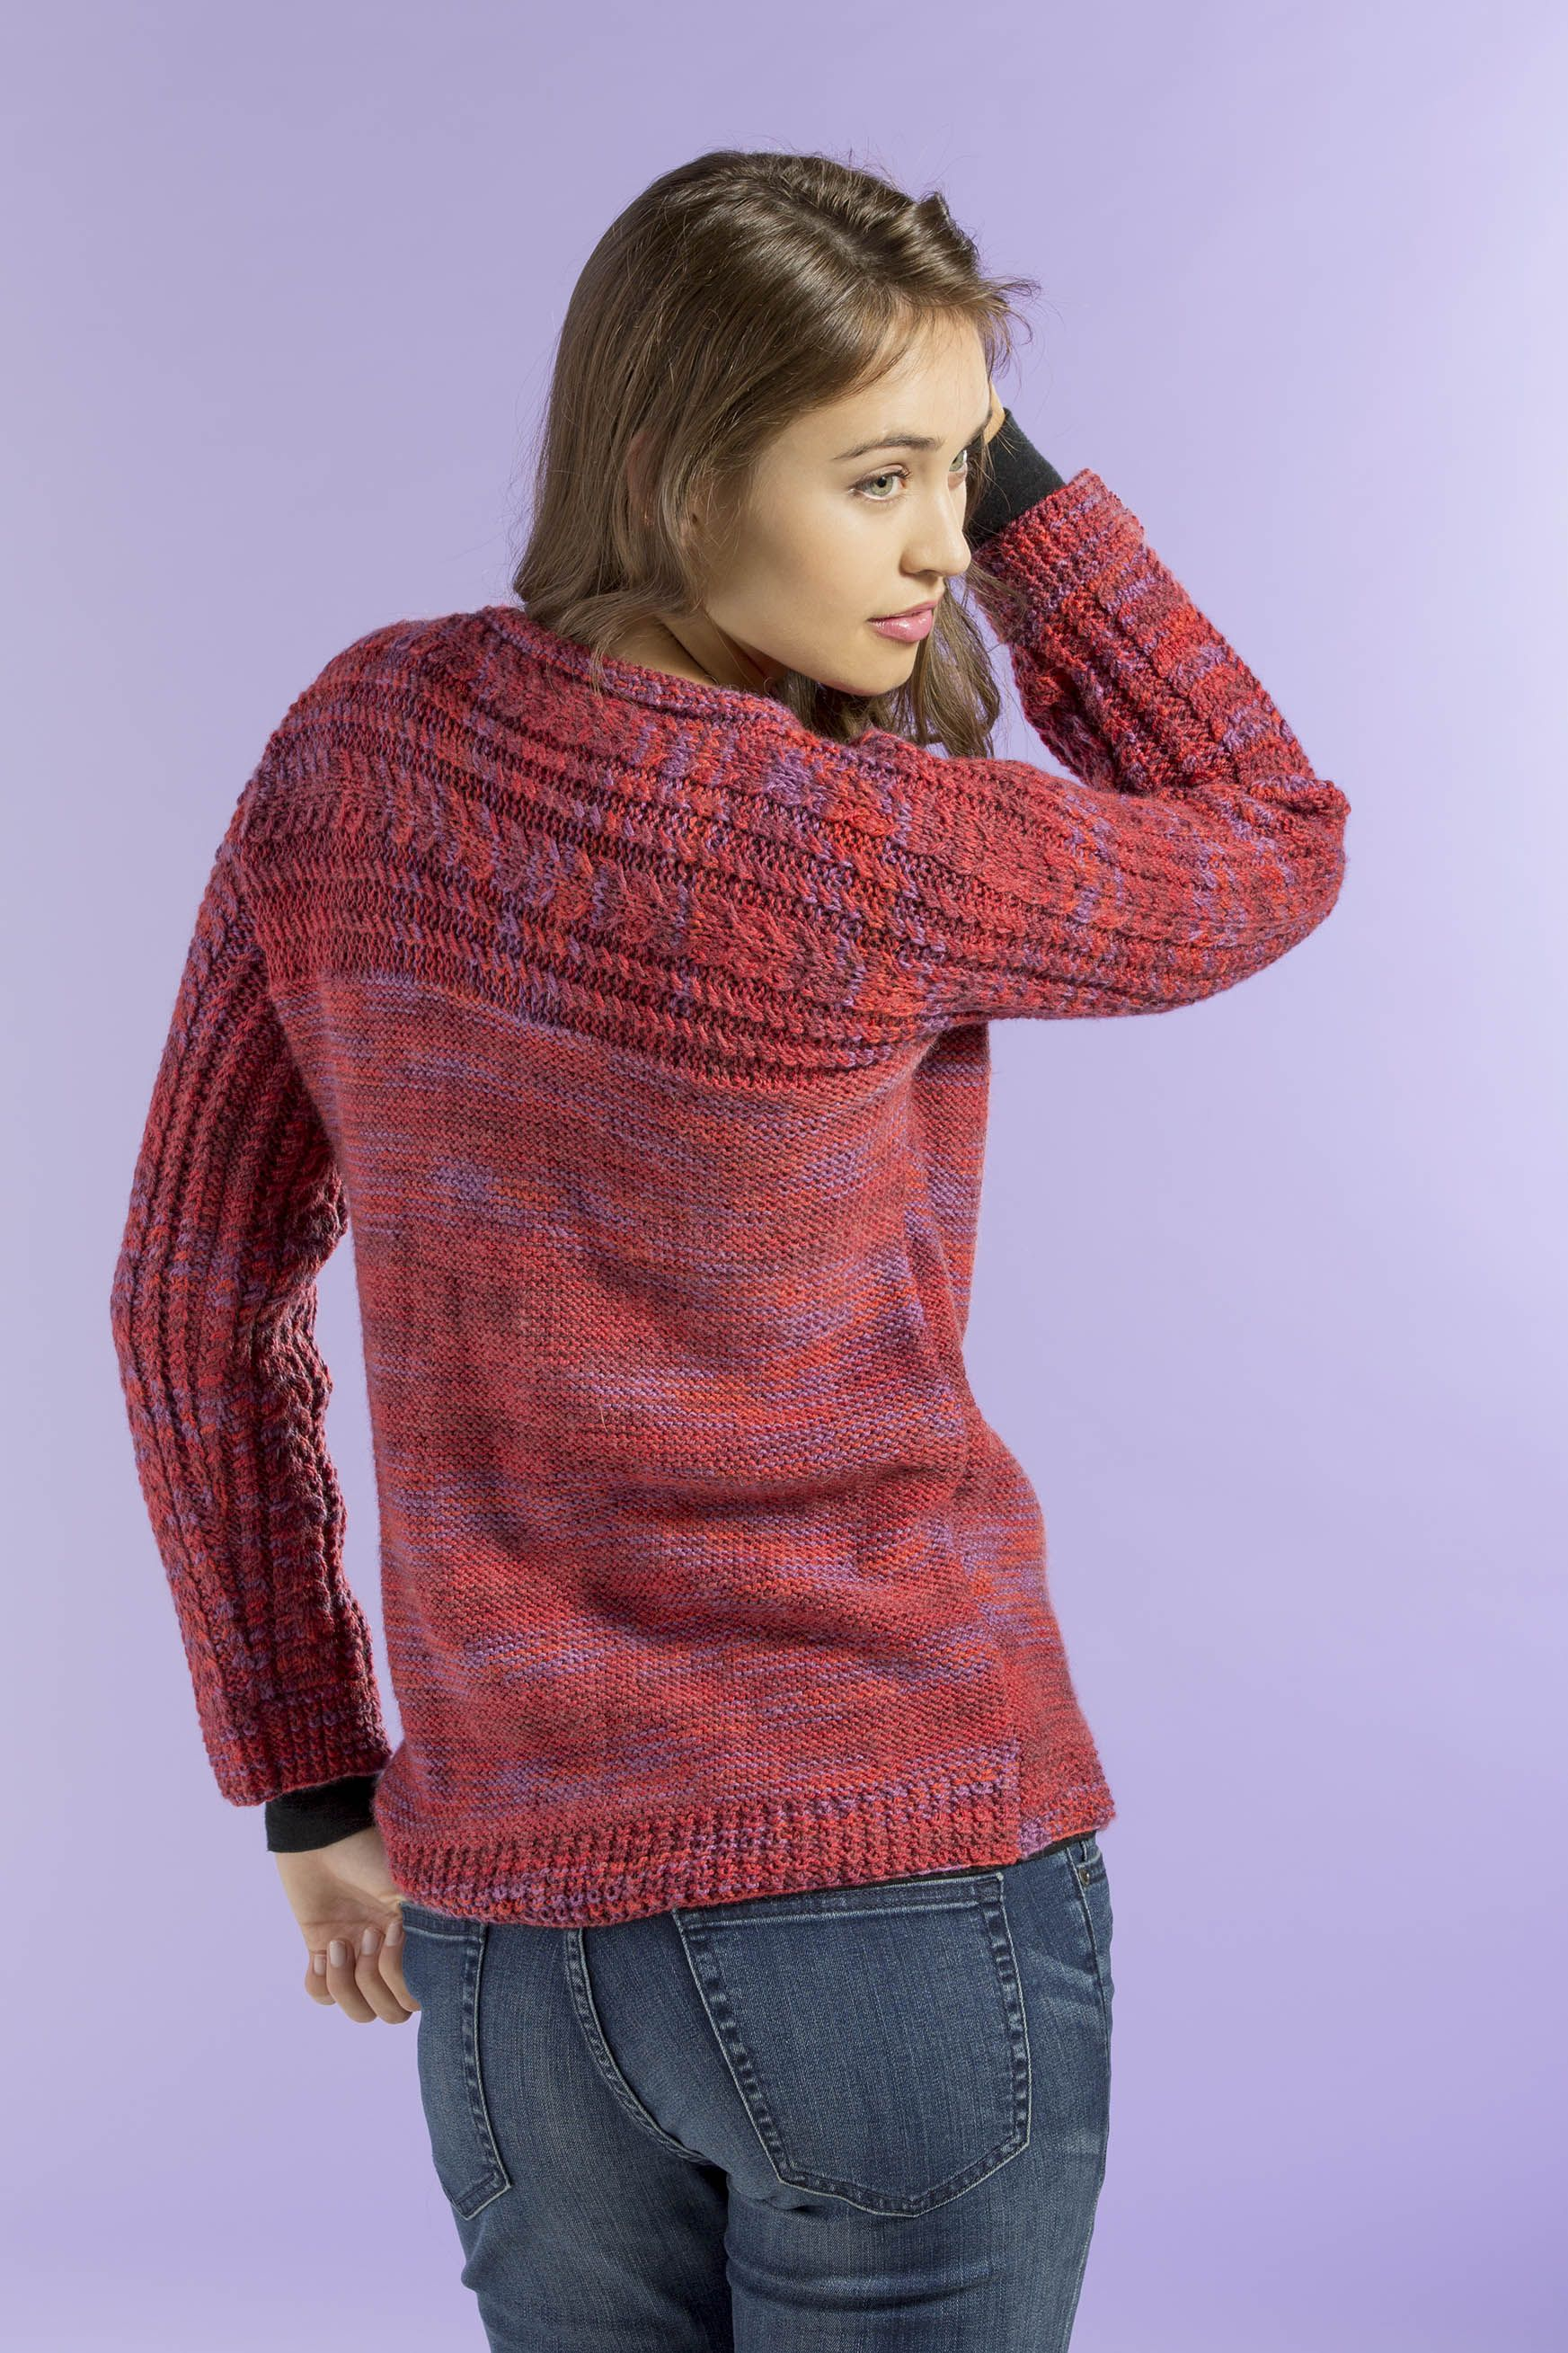 Free Knitting Pattern - Siren Sweater in Infusion Handpaints | Free ...